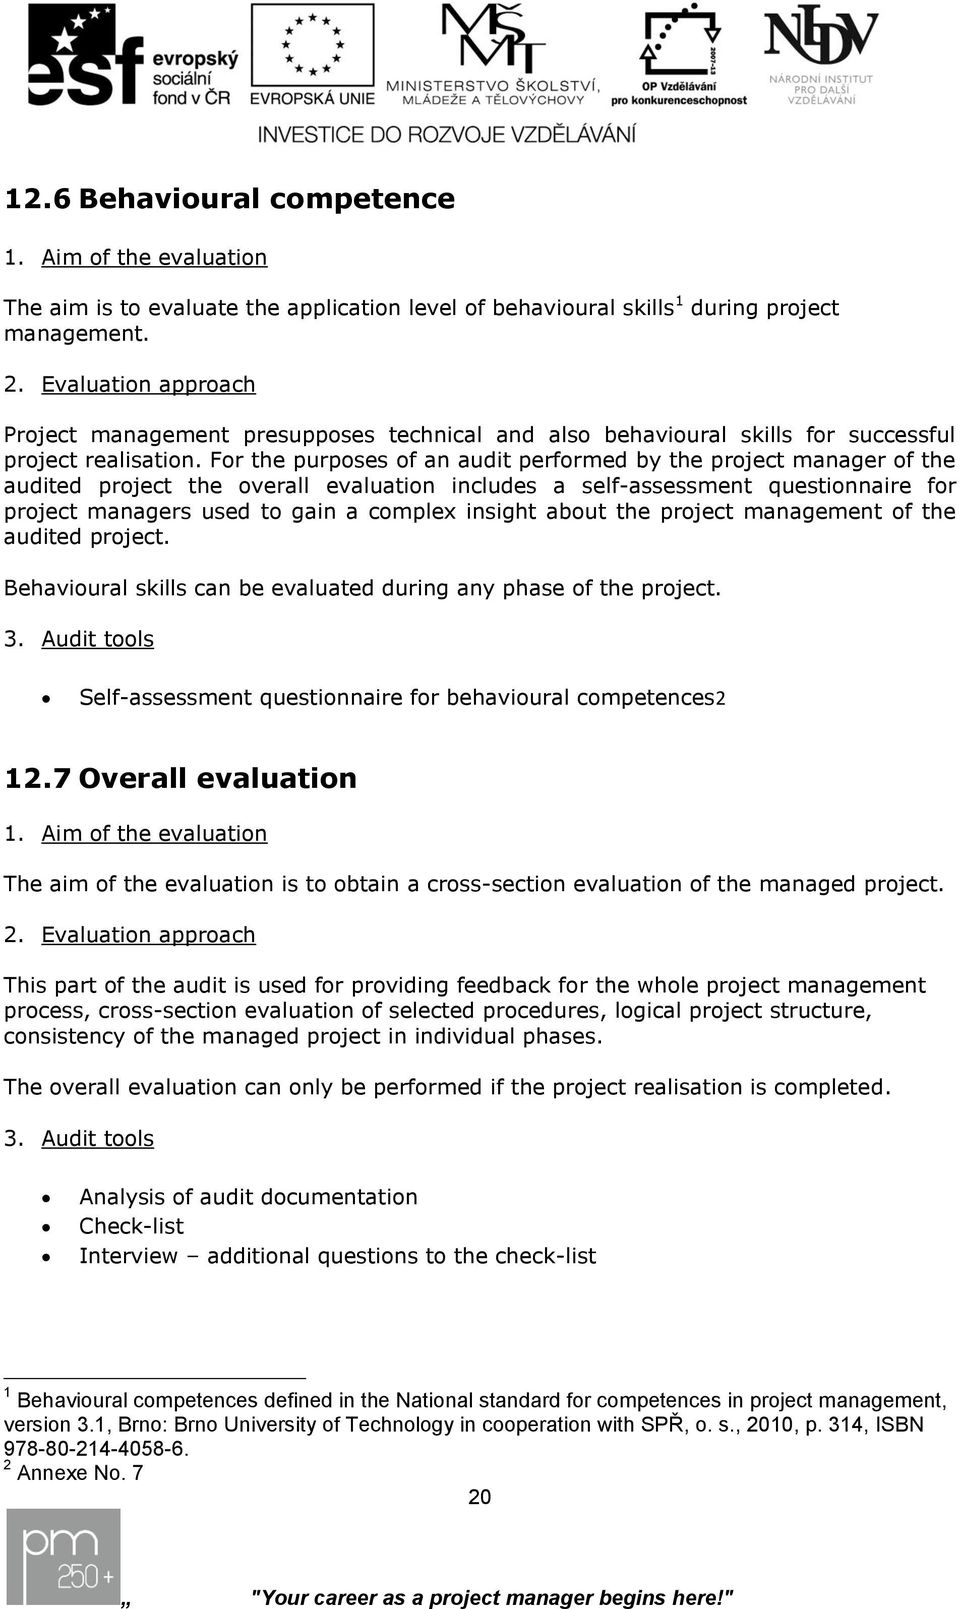 For the purposes of an audit performed by the project manager of the audited project the overall evaluation includes a self-assessment questionnaire for project managers used to gain a complex